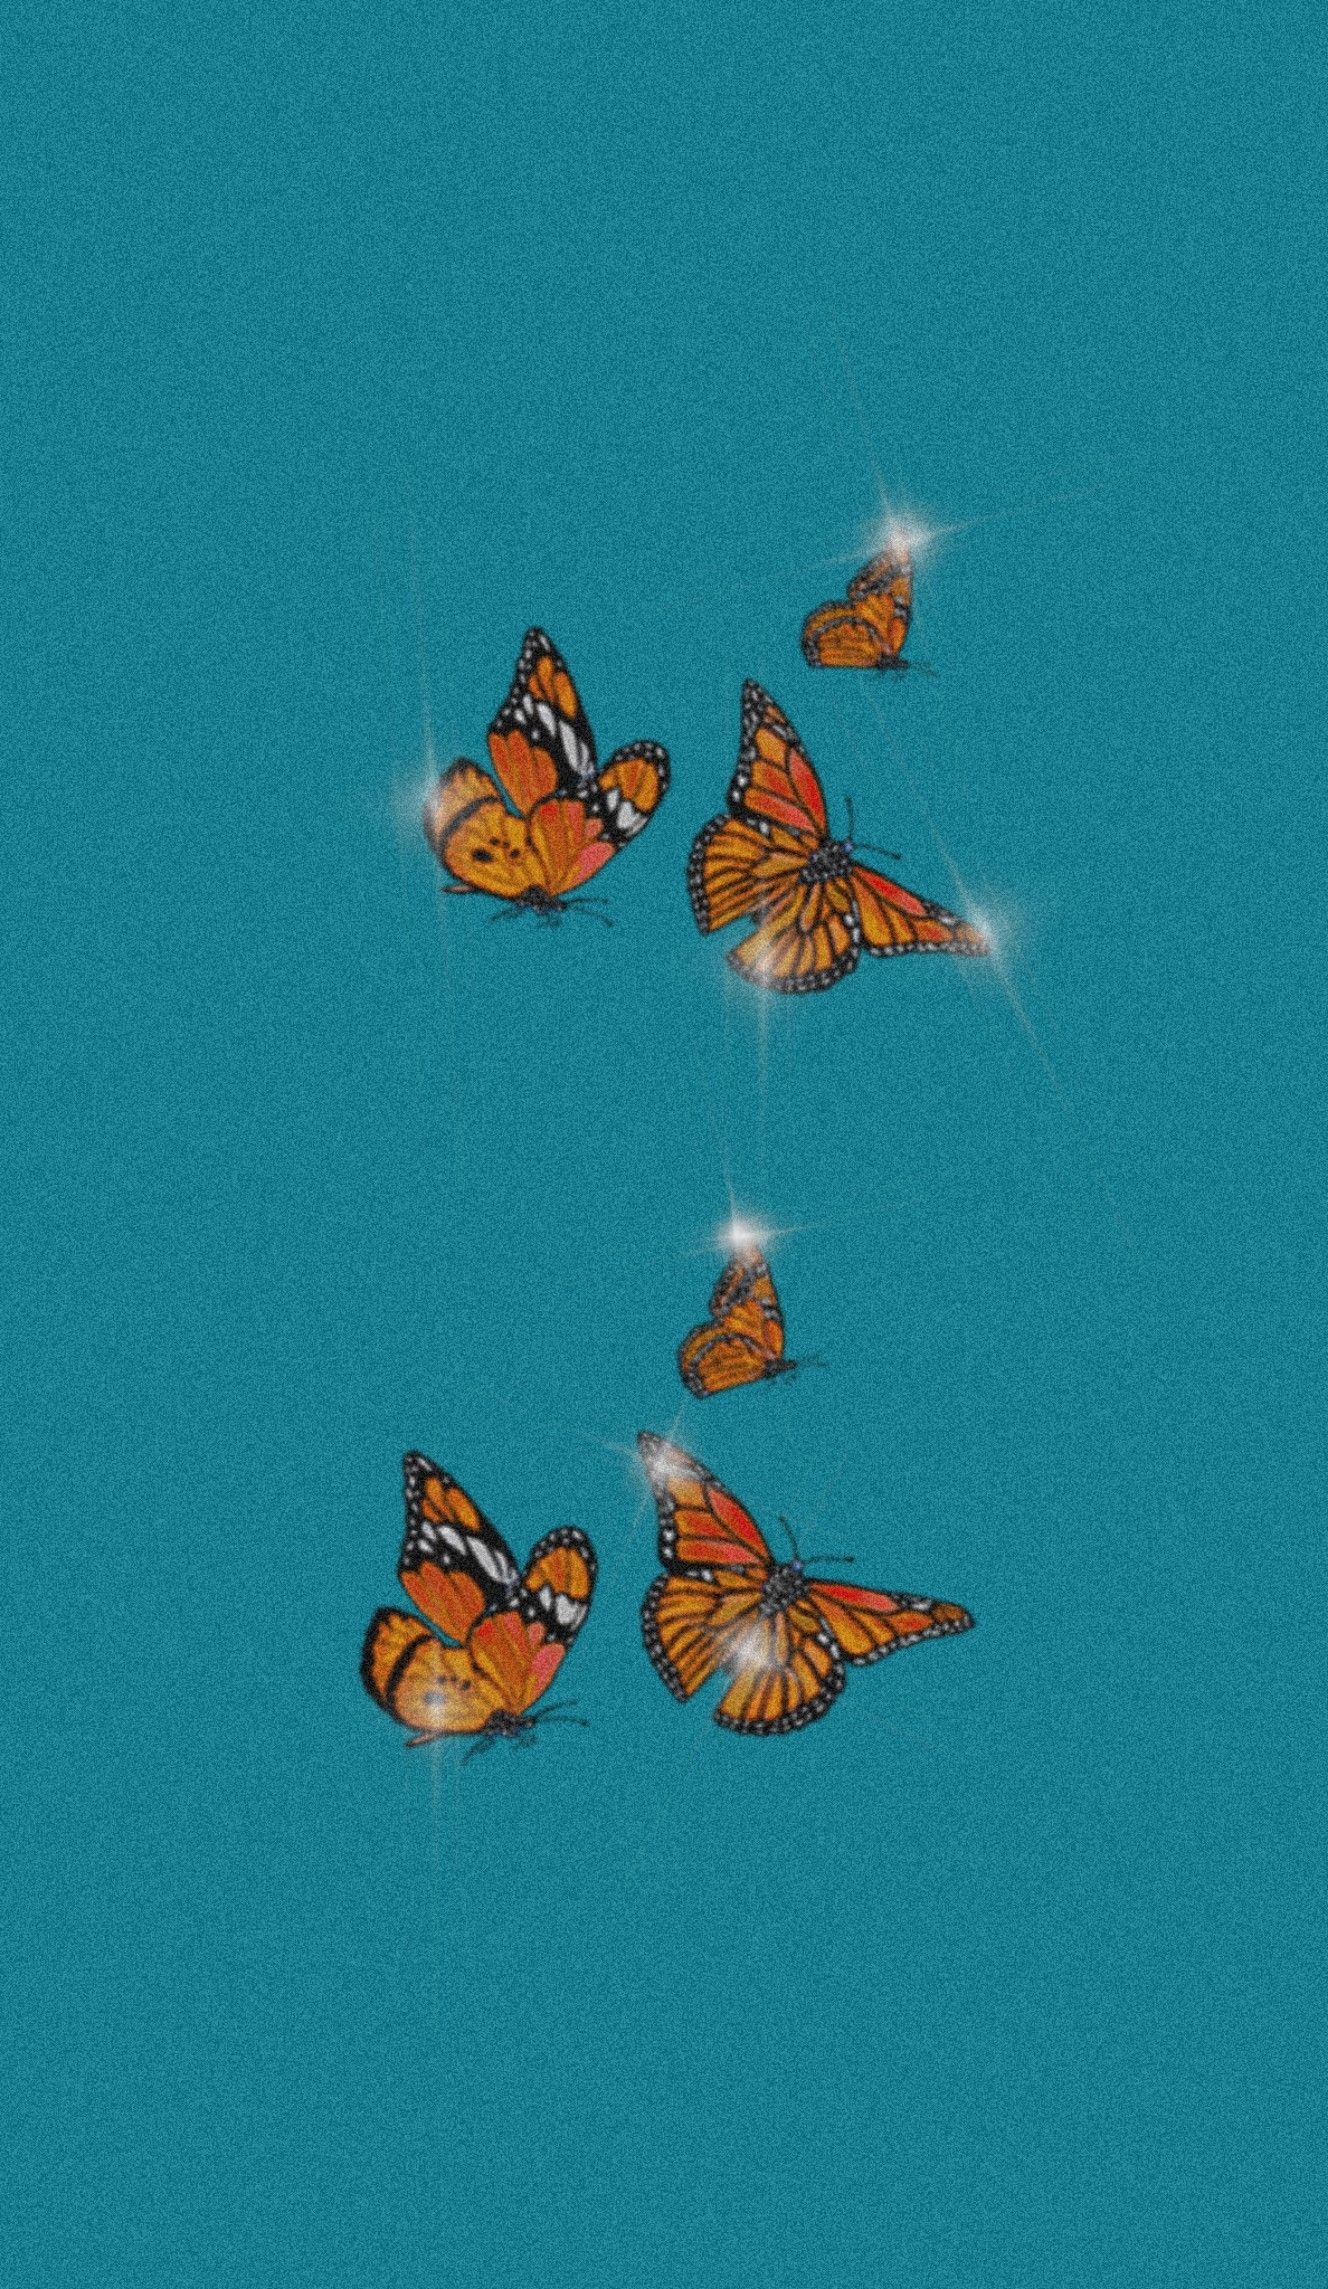 Bling and butterfly wallpaper in 2020 Bling wallpaper